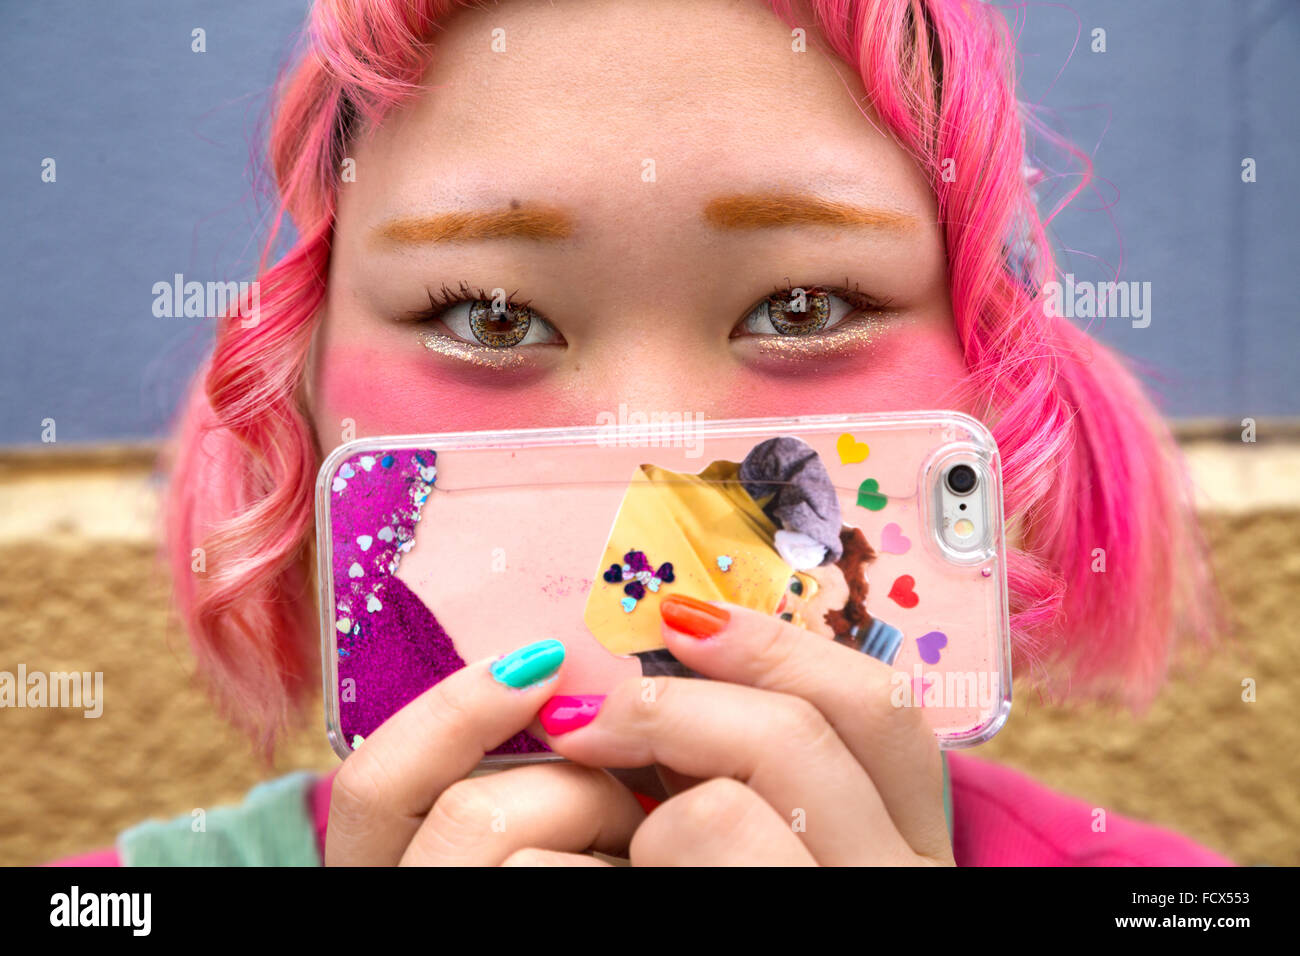 Japanese girl with mobile phone (kawaii fashion trend)  in Tokyo - Stock Image